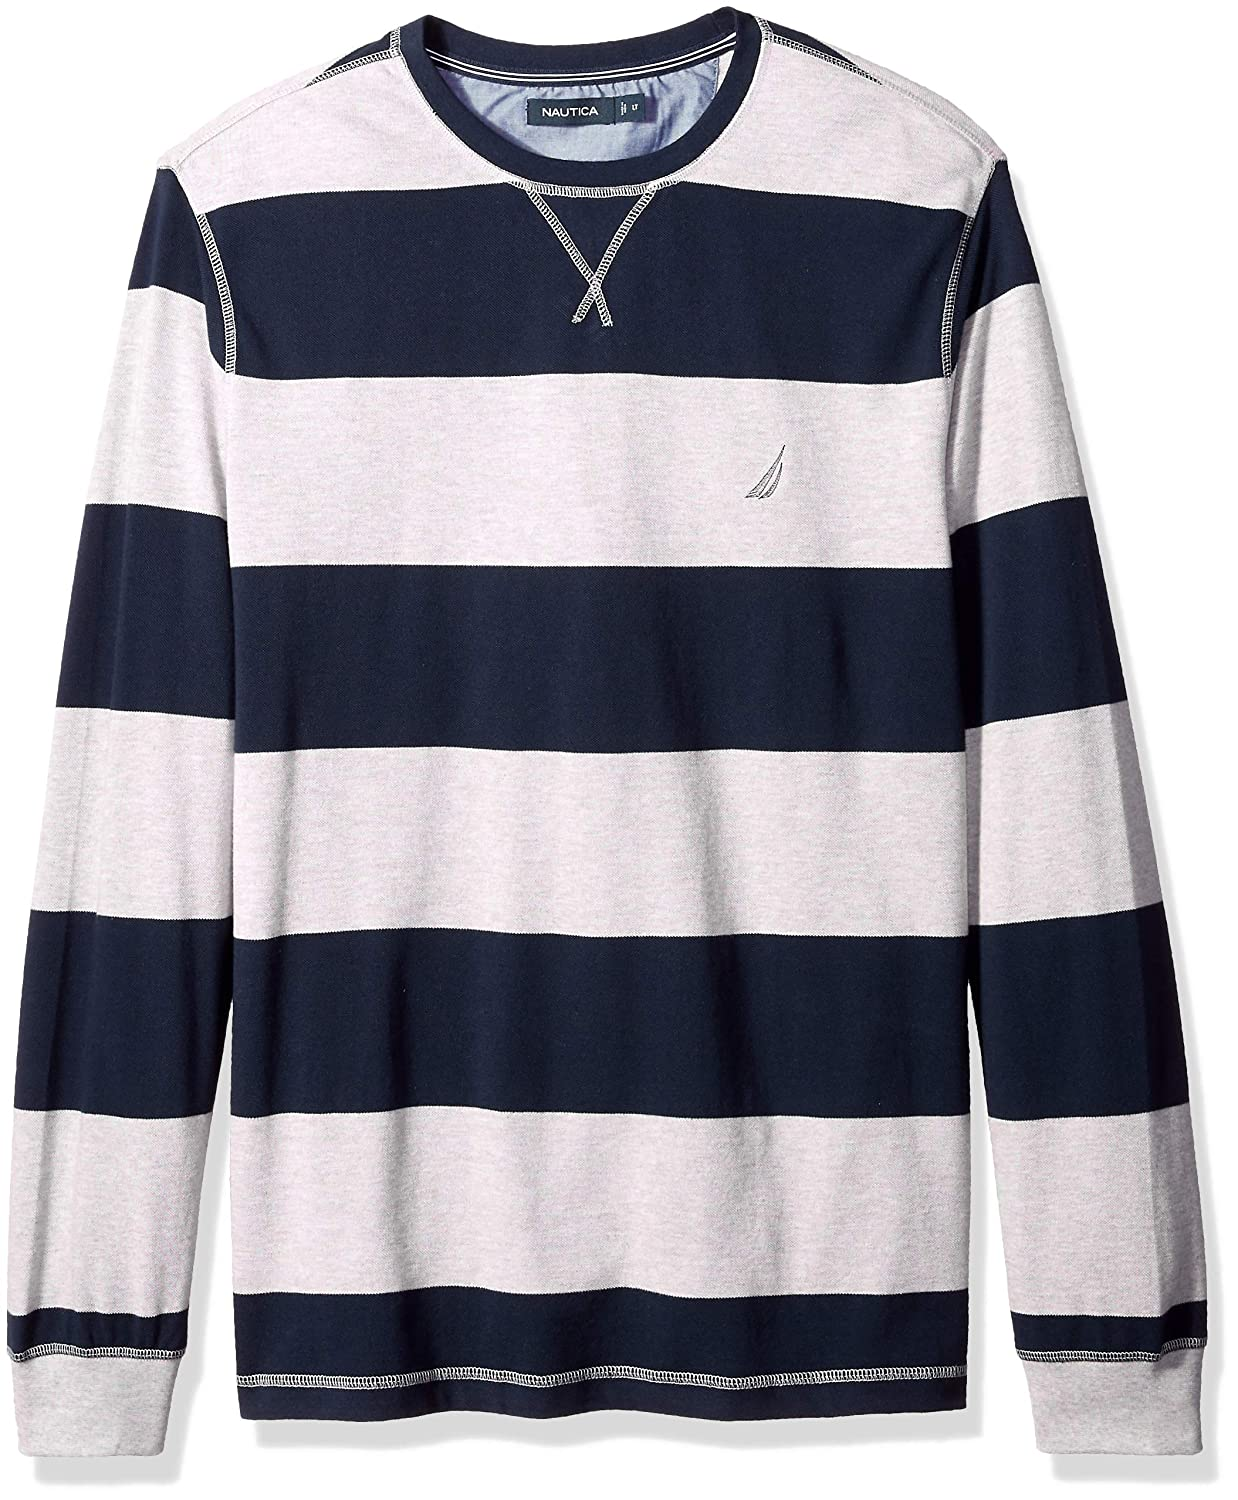 ab90a09893 Nautica Men's Big and Tall Long Sleeve Rugby Stripe Crewneck Polo Shirt,:  Amazon.in: Clothing & Accessories